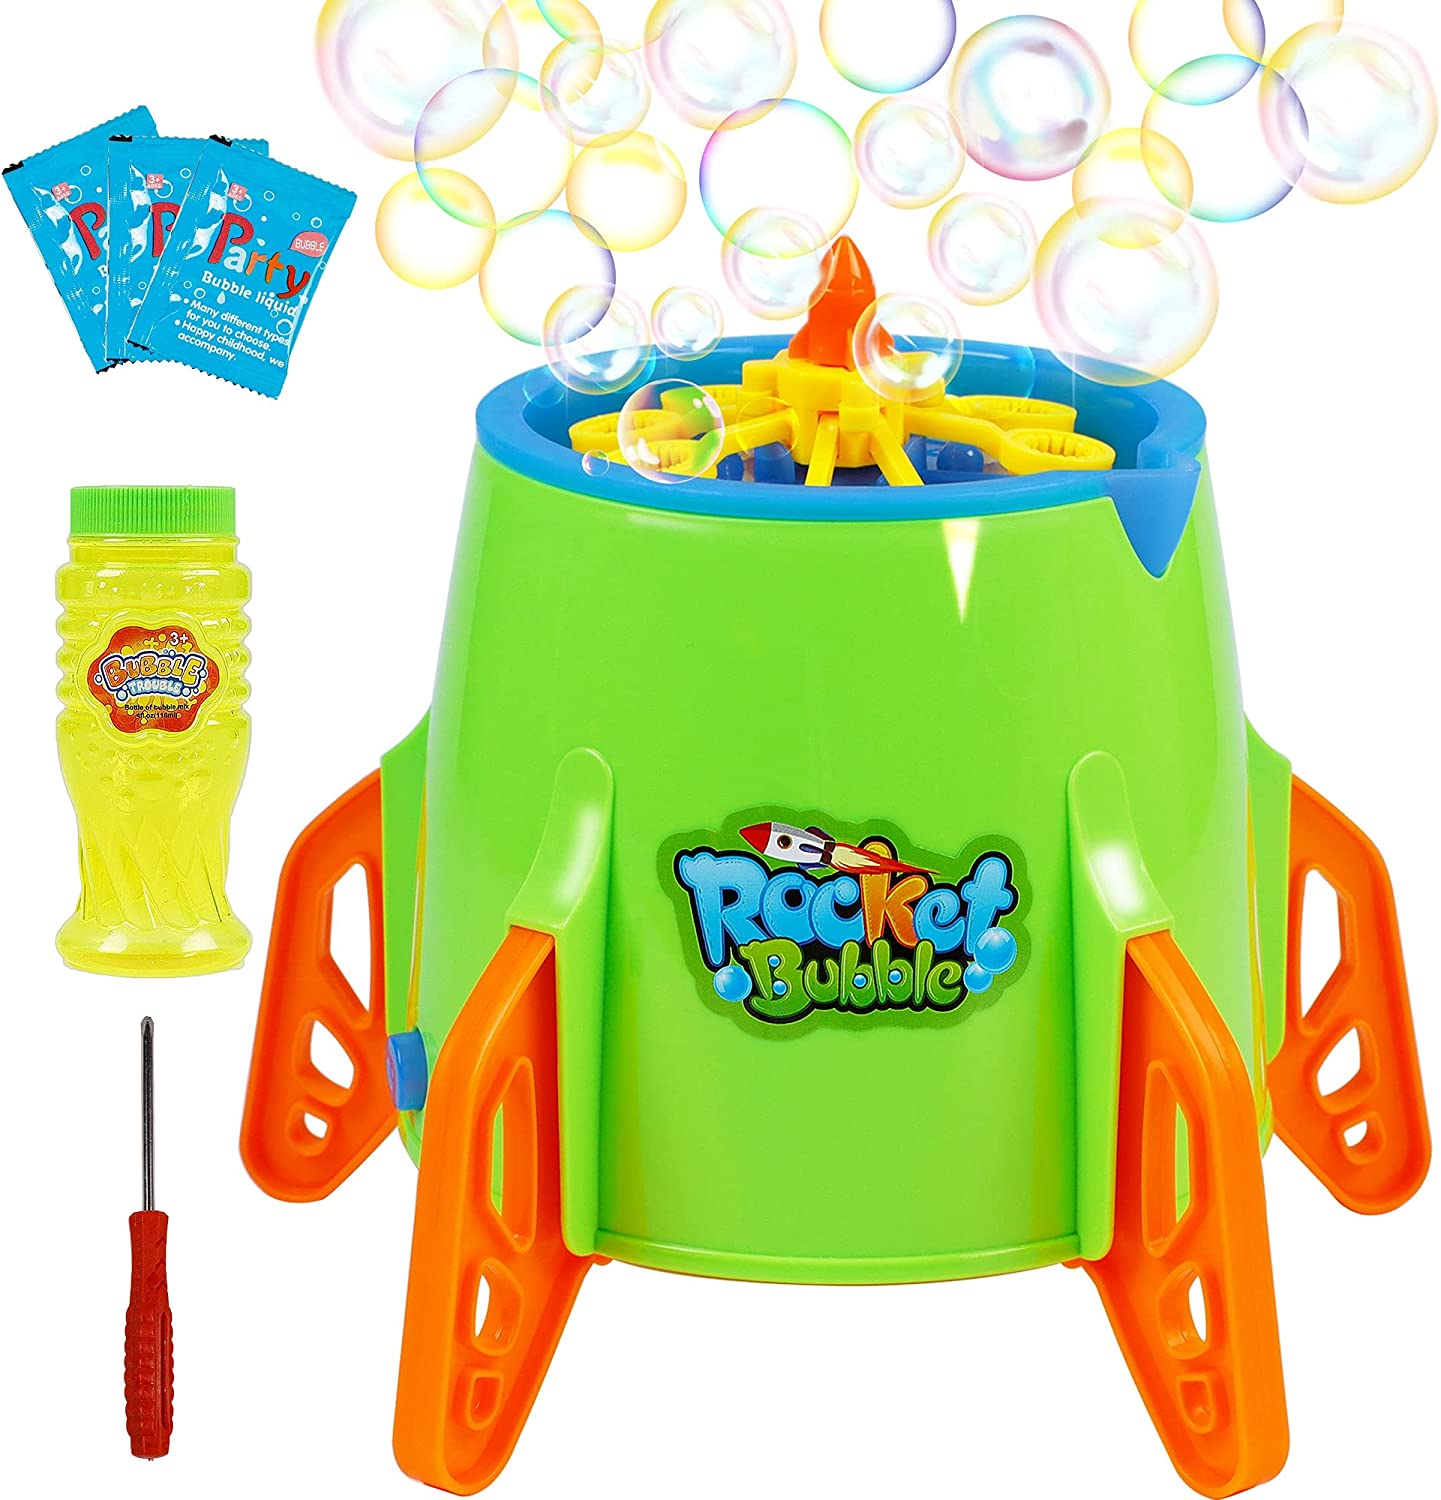 Lulu Home Bubble Machine, Automatic Space Rocket Bubble Blower for Toddlers Kids Girls Boys Graduation Parties, Blowing 3000+ Bubbles Per Minute Accompanied with Music and Lights